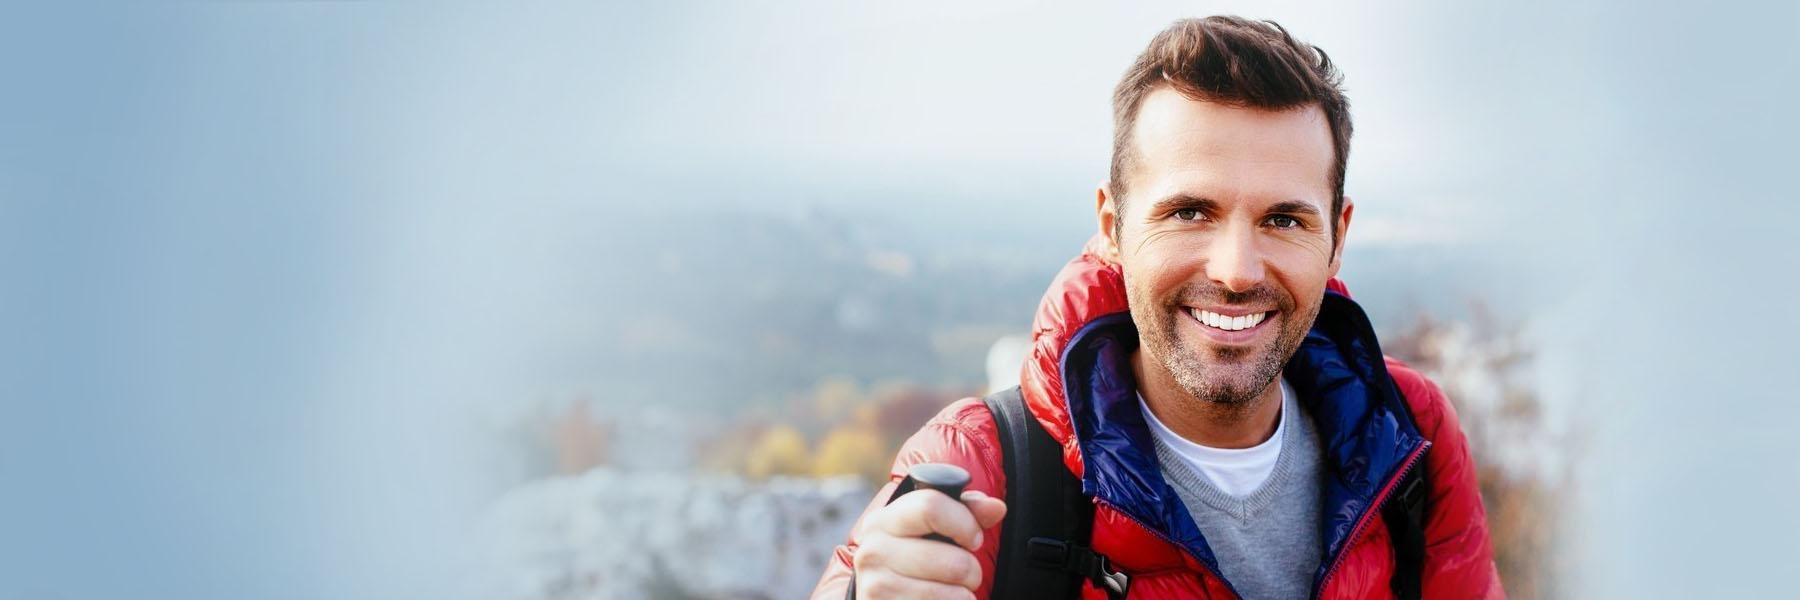 Man in red jacket smiling while hiking